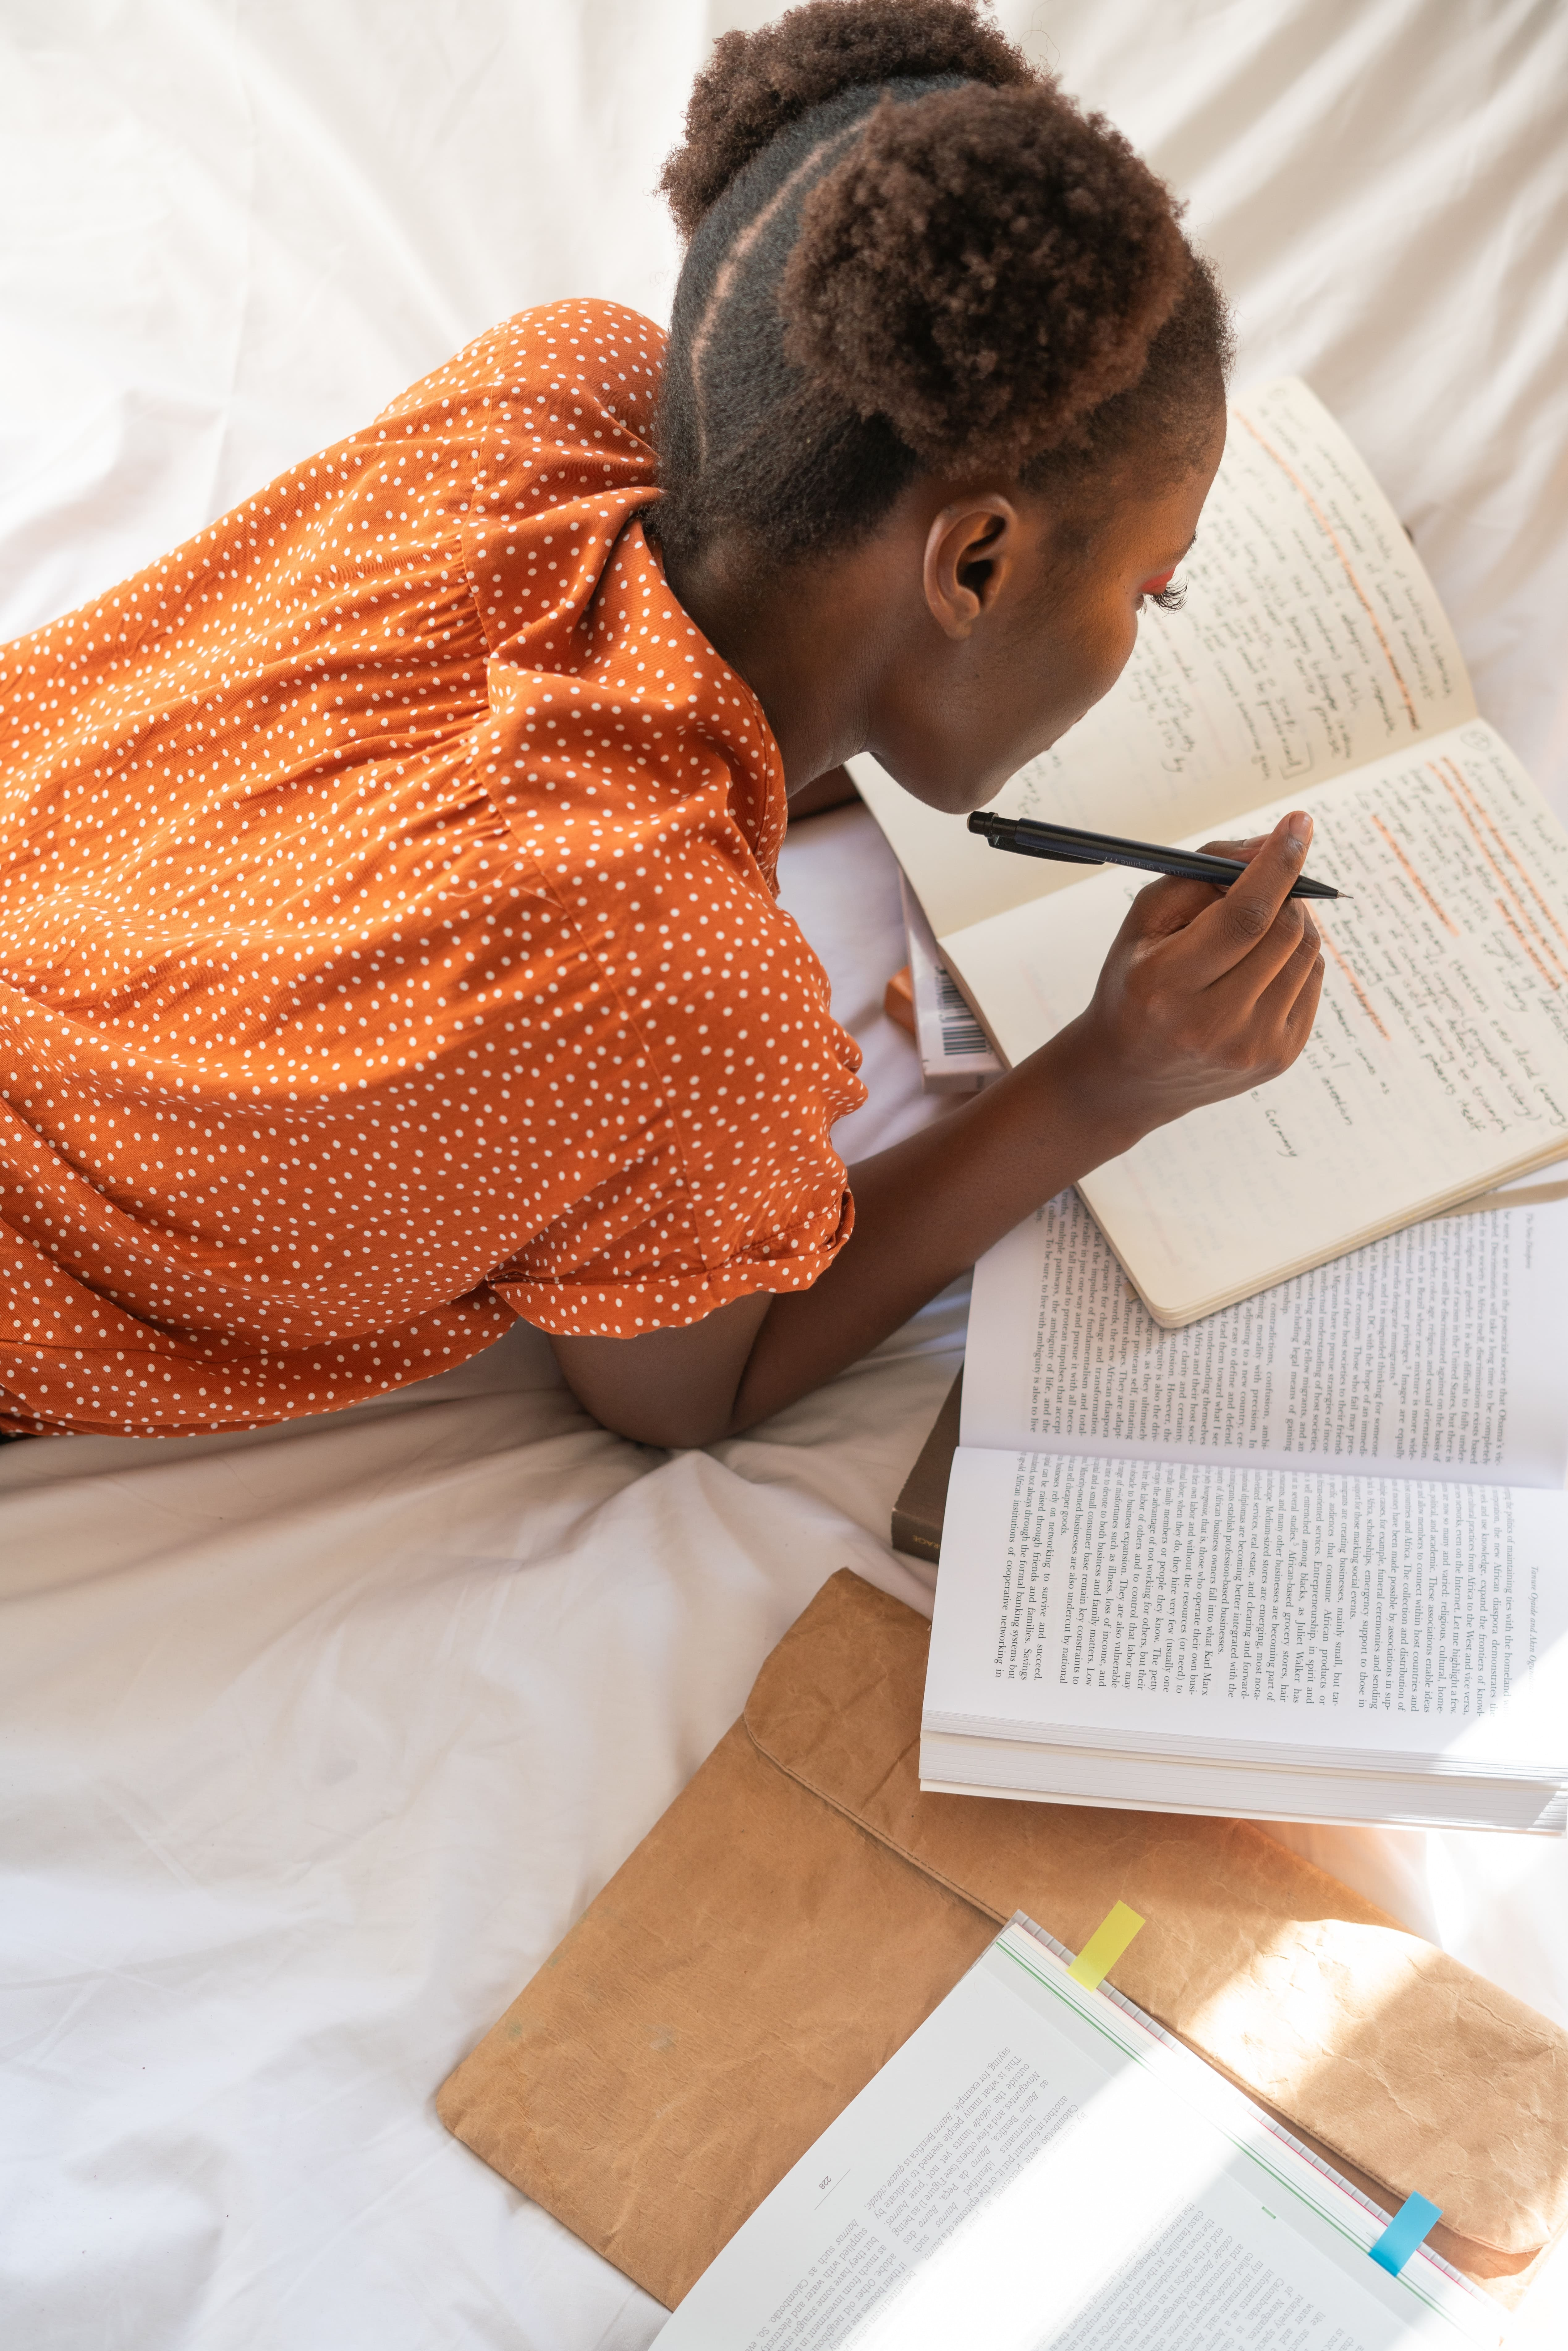 A photo of a girl writing in her notebook.